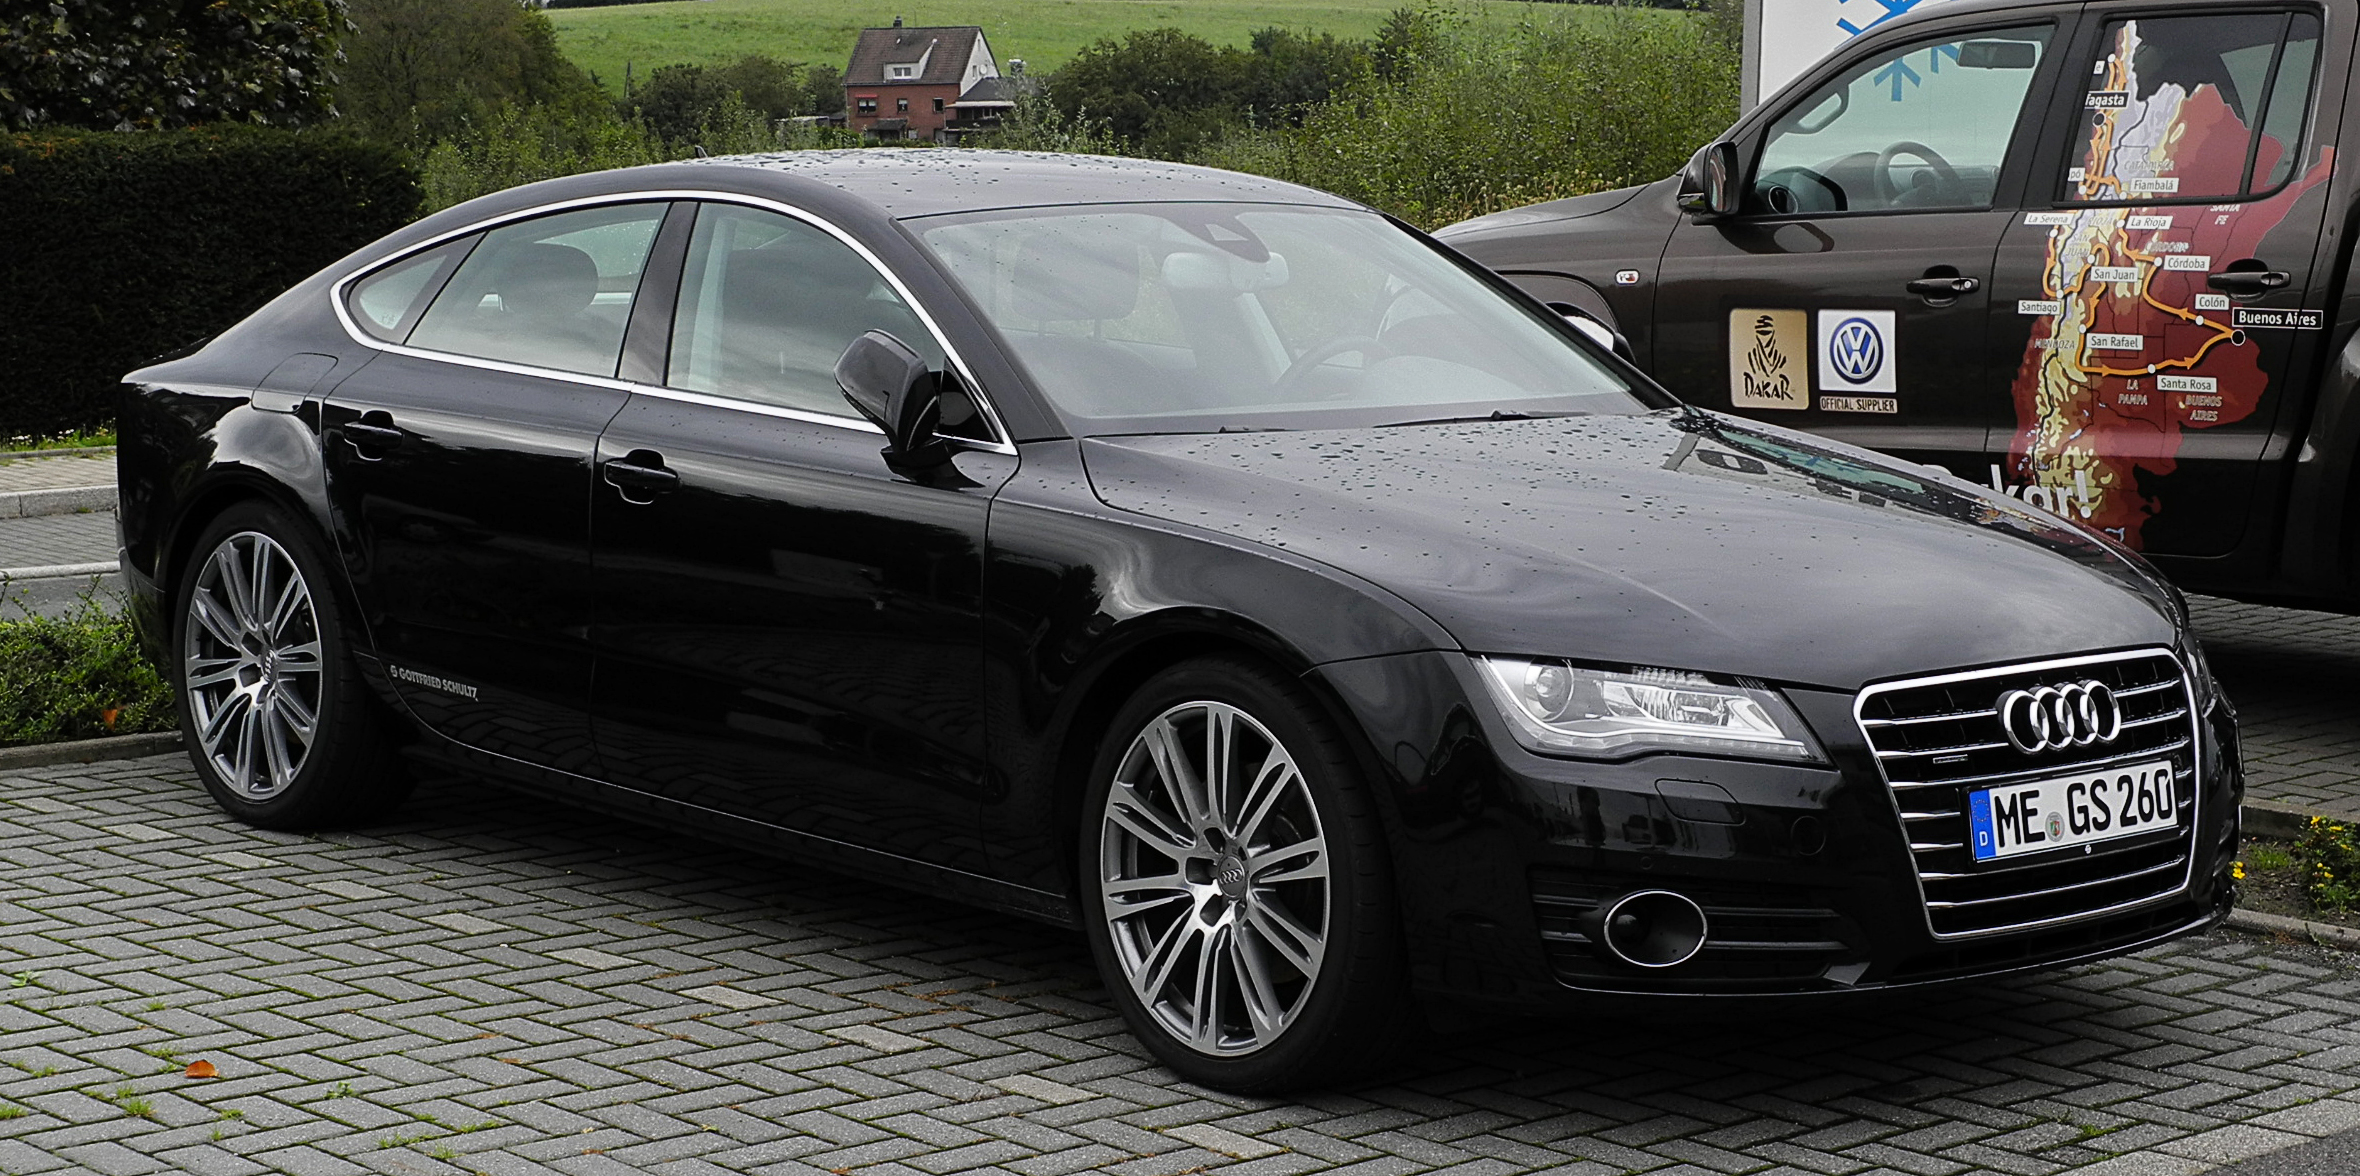 datei audi a7 sportback 3 0 tdi quattro frontansicht 1 11 september 2011. Black Bedroom Furniture Sets. Home Design Ideas